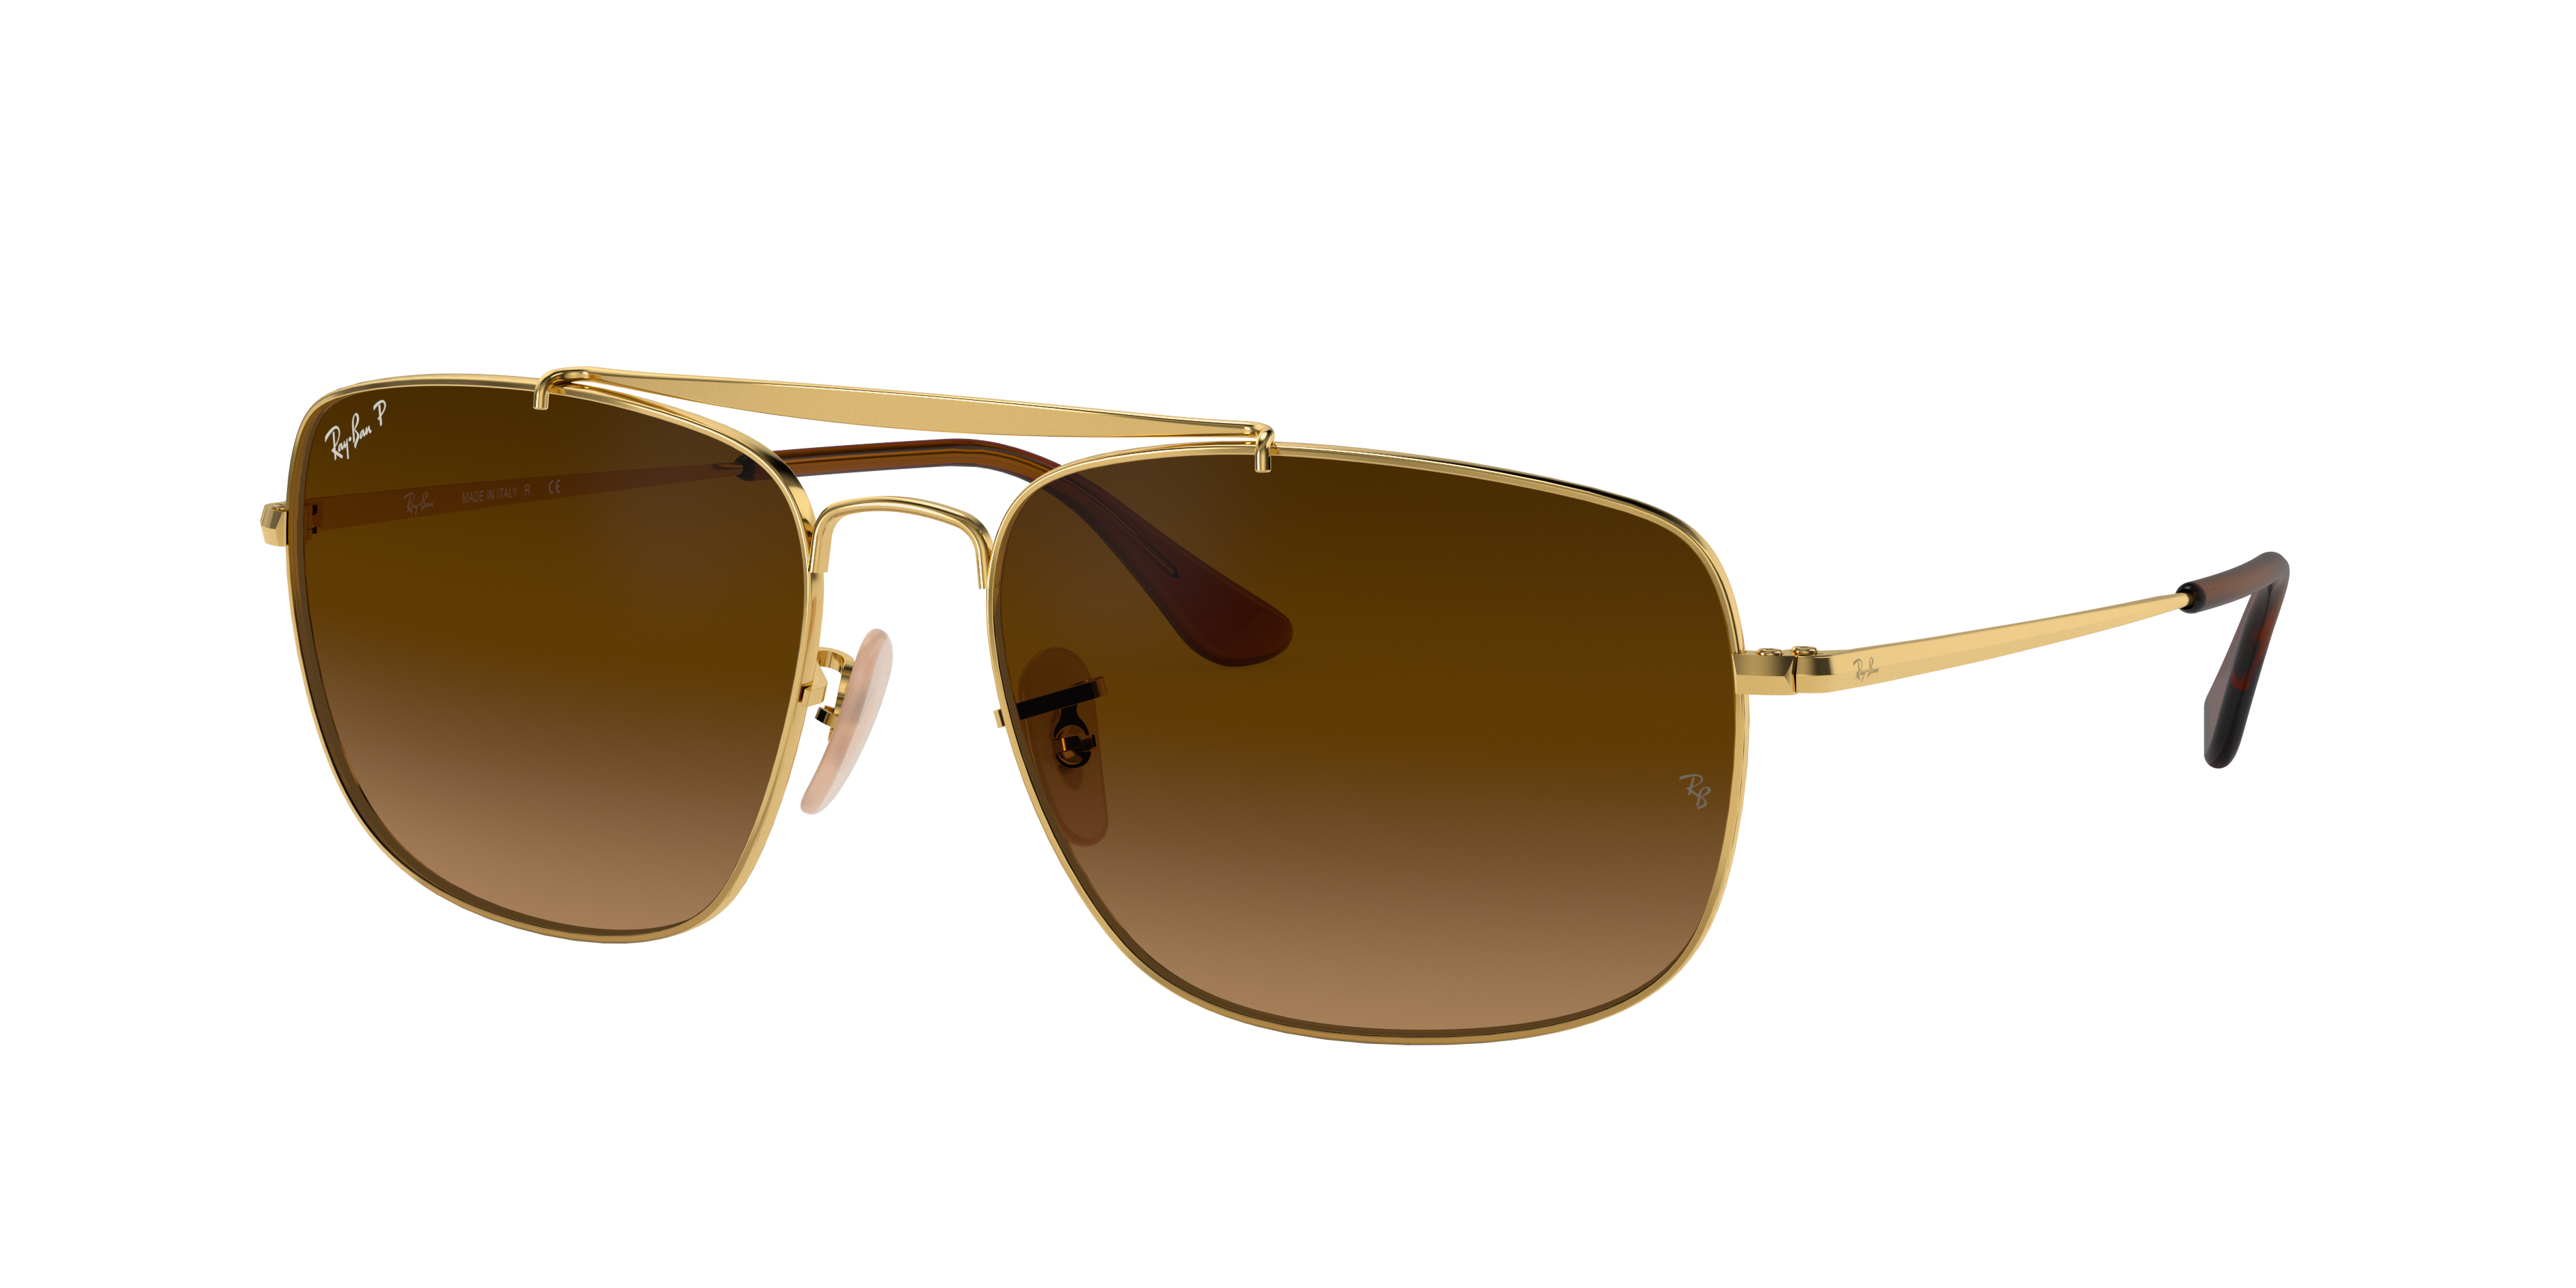 Ray-Ban Colonel Gold, Polarized Brown Lenses - RB3560